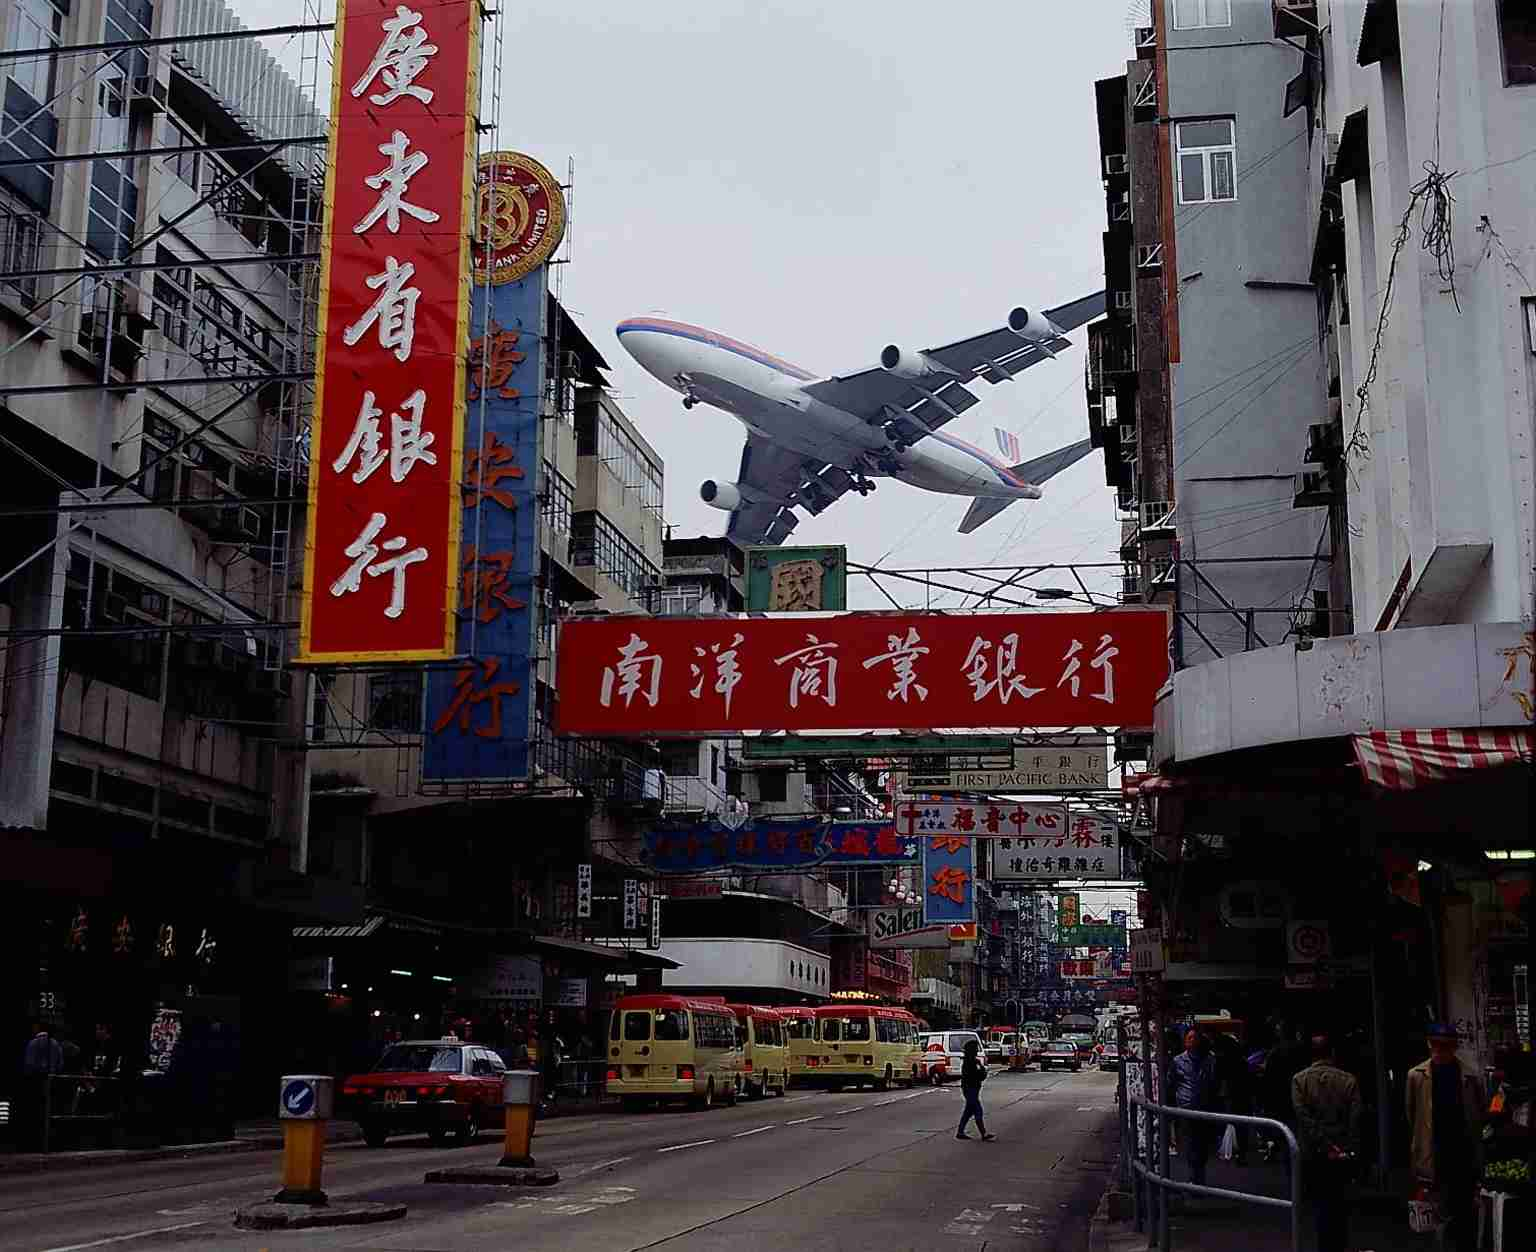 (GERMANY OUT) Passagierflugzeug beim Landeanflug aufden Flughafen Kai Tak direkt über der NgaTsin Wai Road in Kowloon - 1996col (Photo by Winter/ullstein bild via Getty Images)